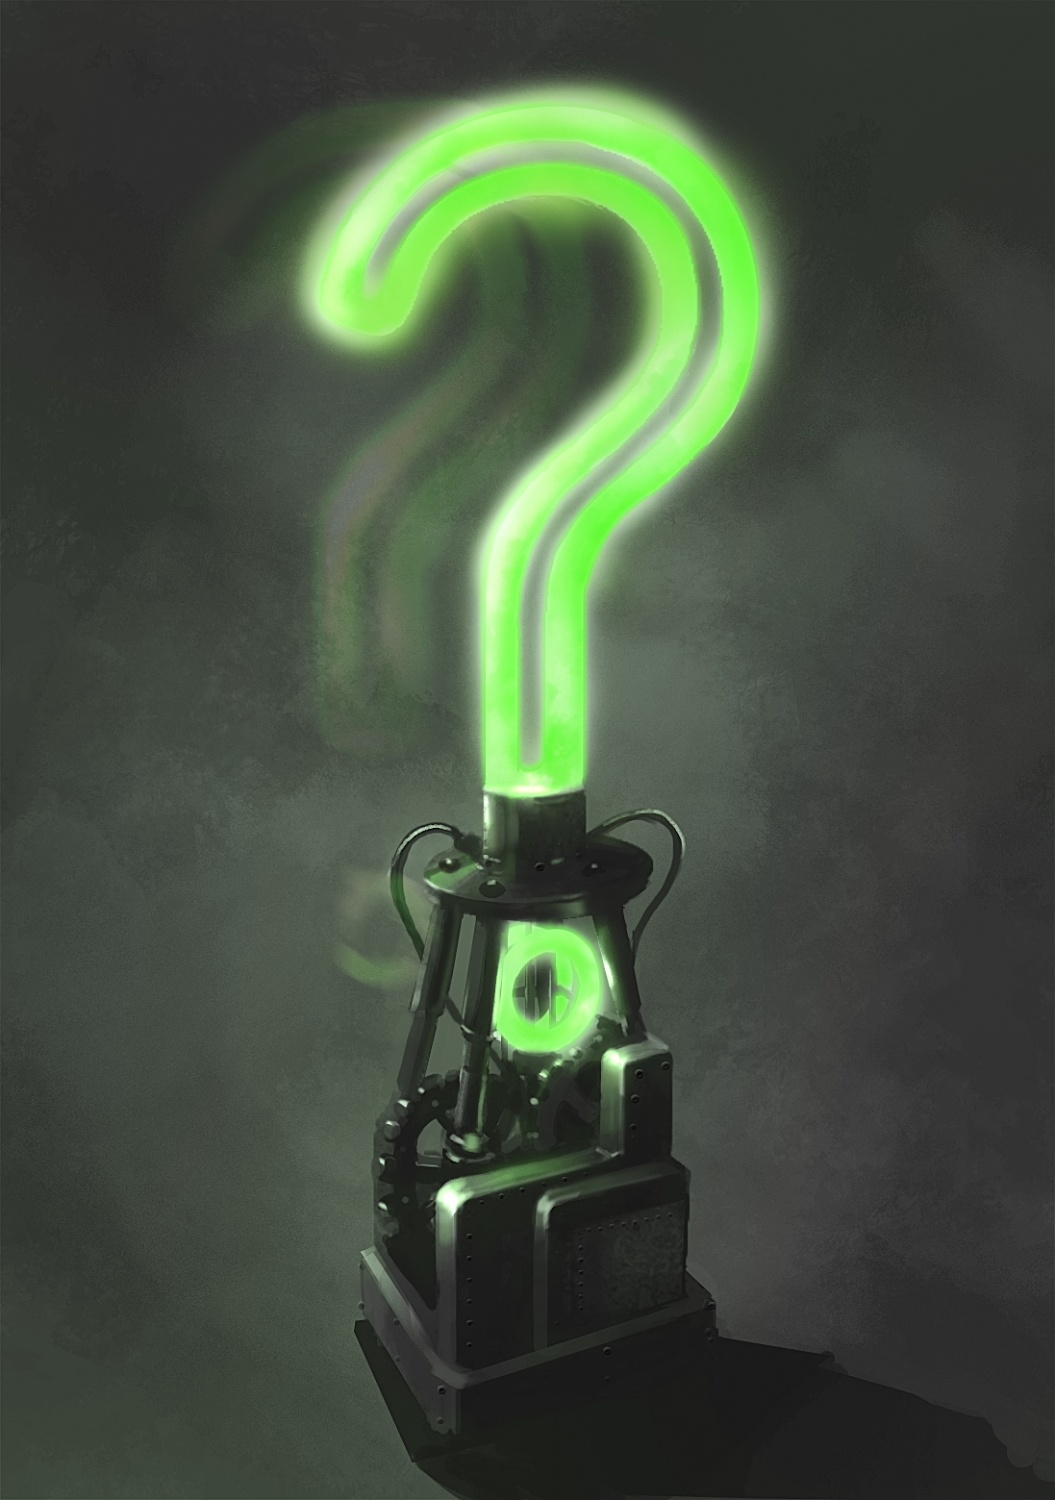 The Riddler Question Mark Wallpaper 1055 x 1500 batman arkham 1055x1500